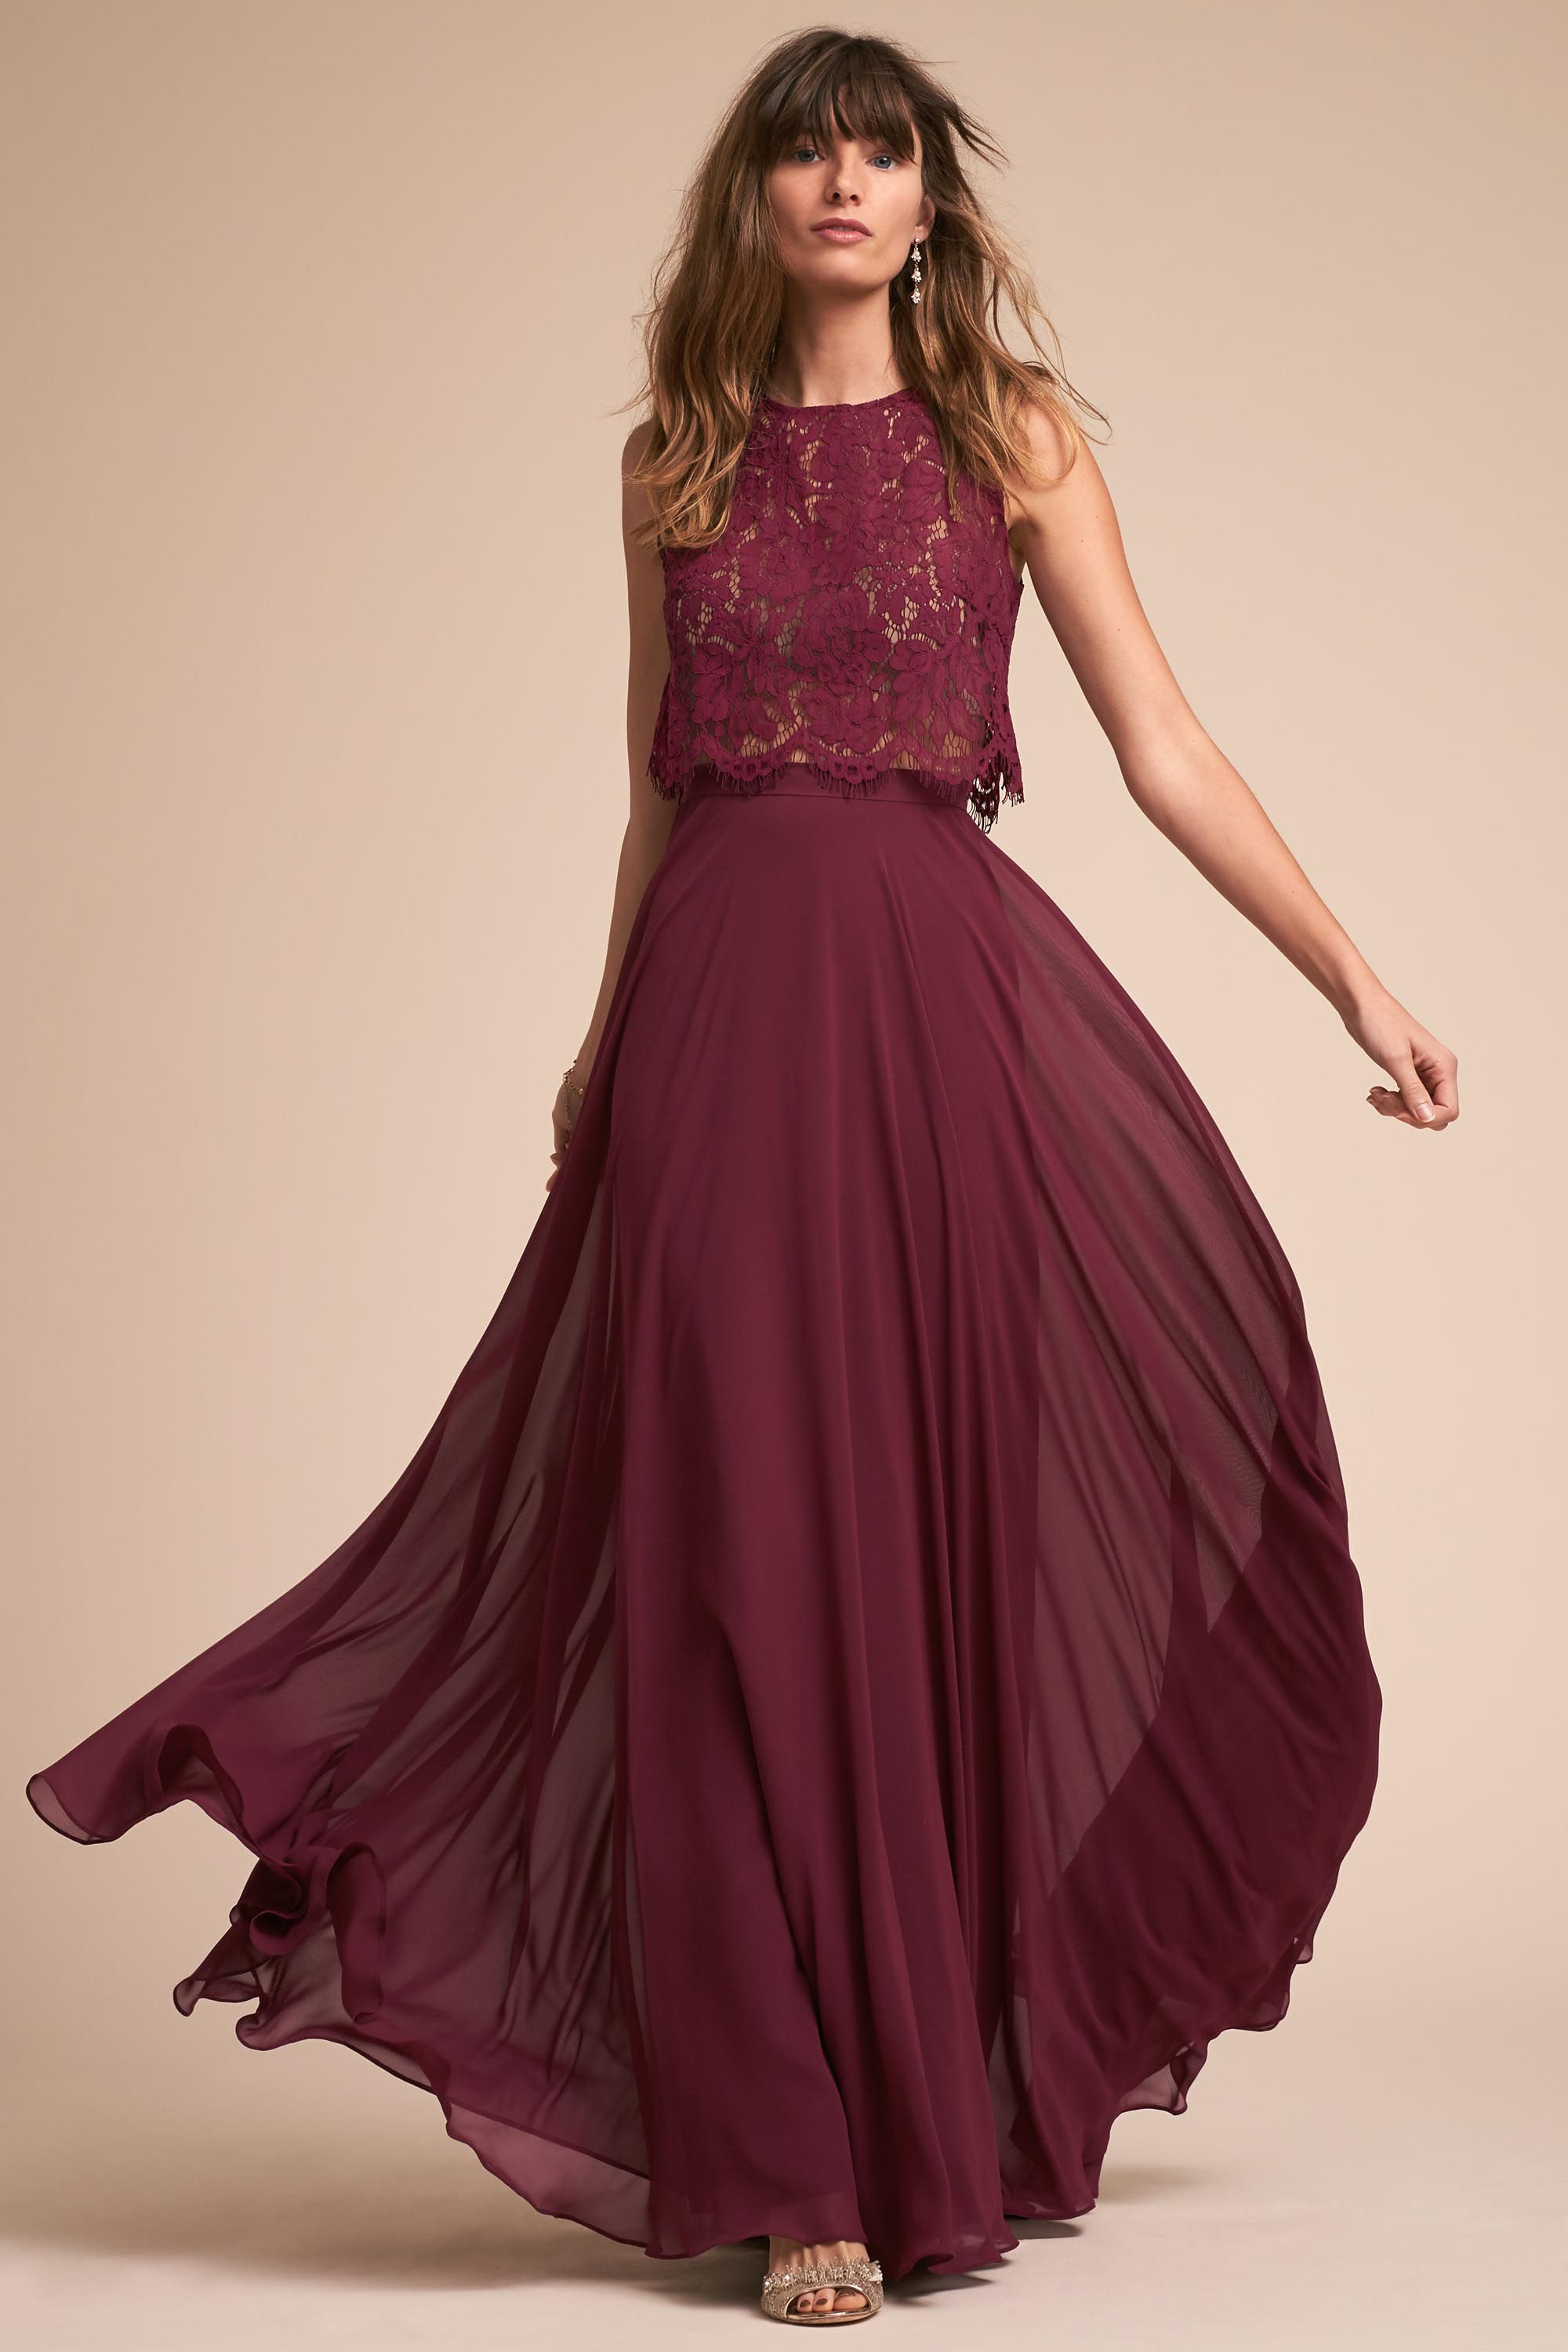 Cleo Top Black Cherry In Bridal Party BHLDN